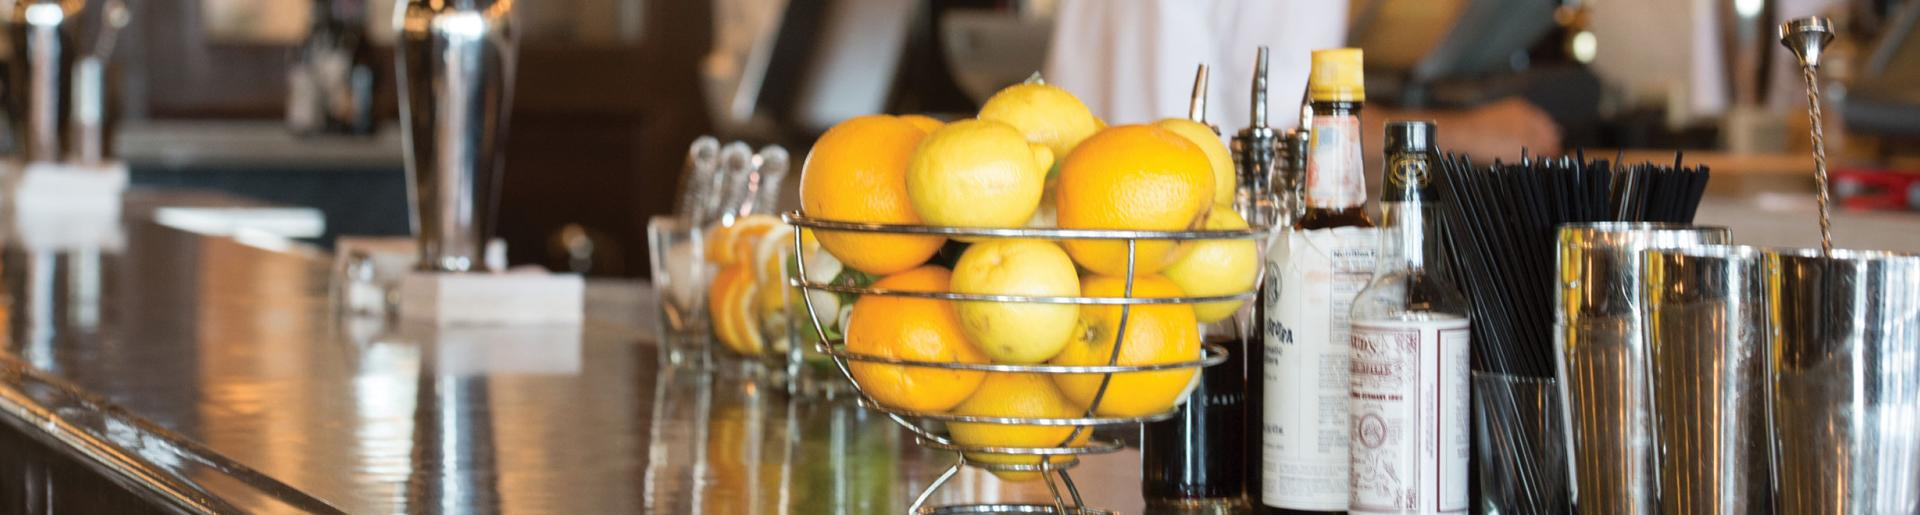 Bar with Lemons